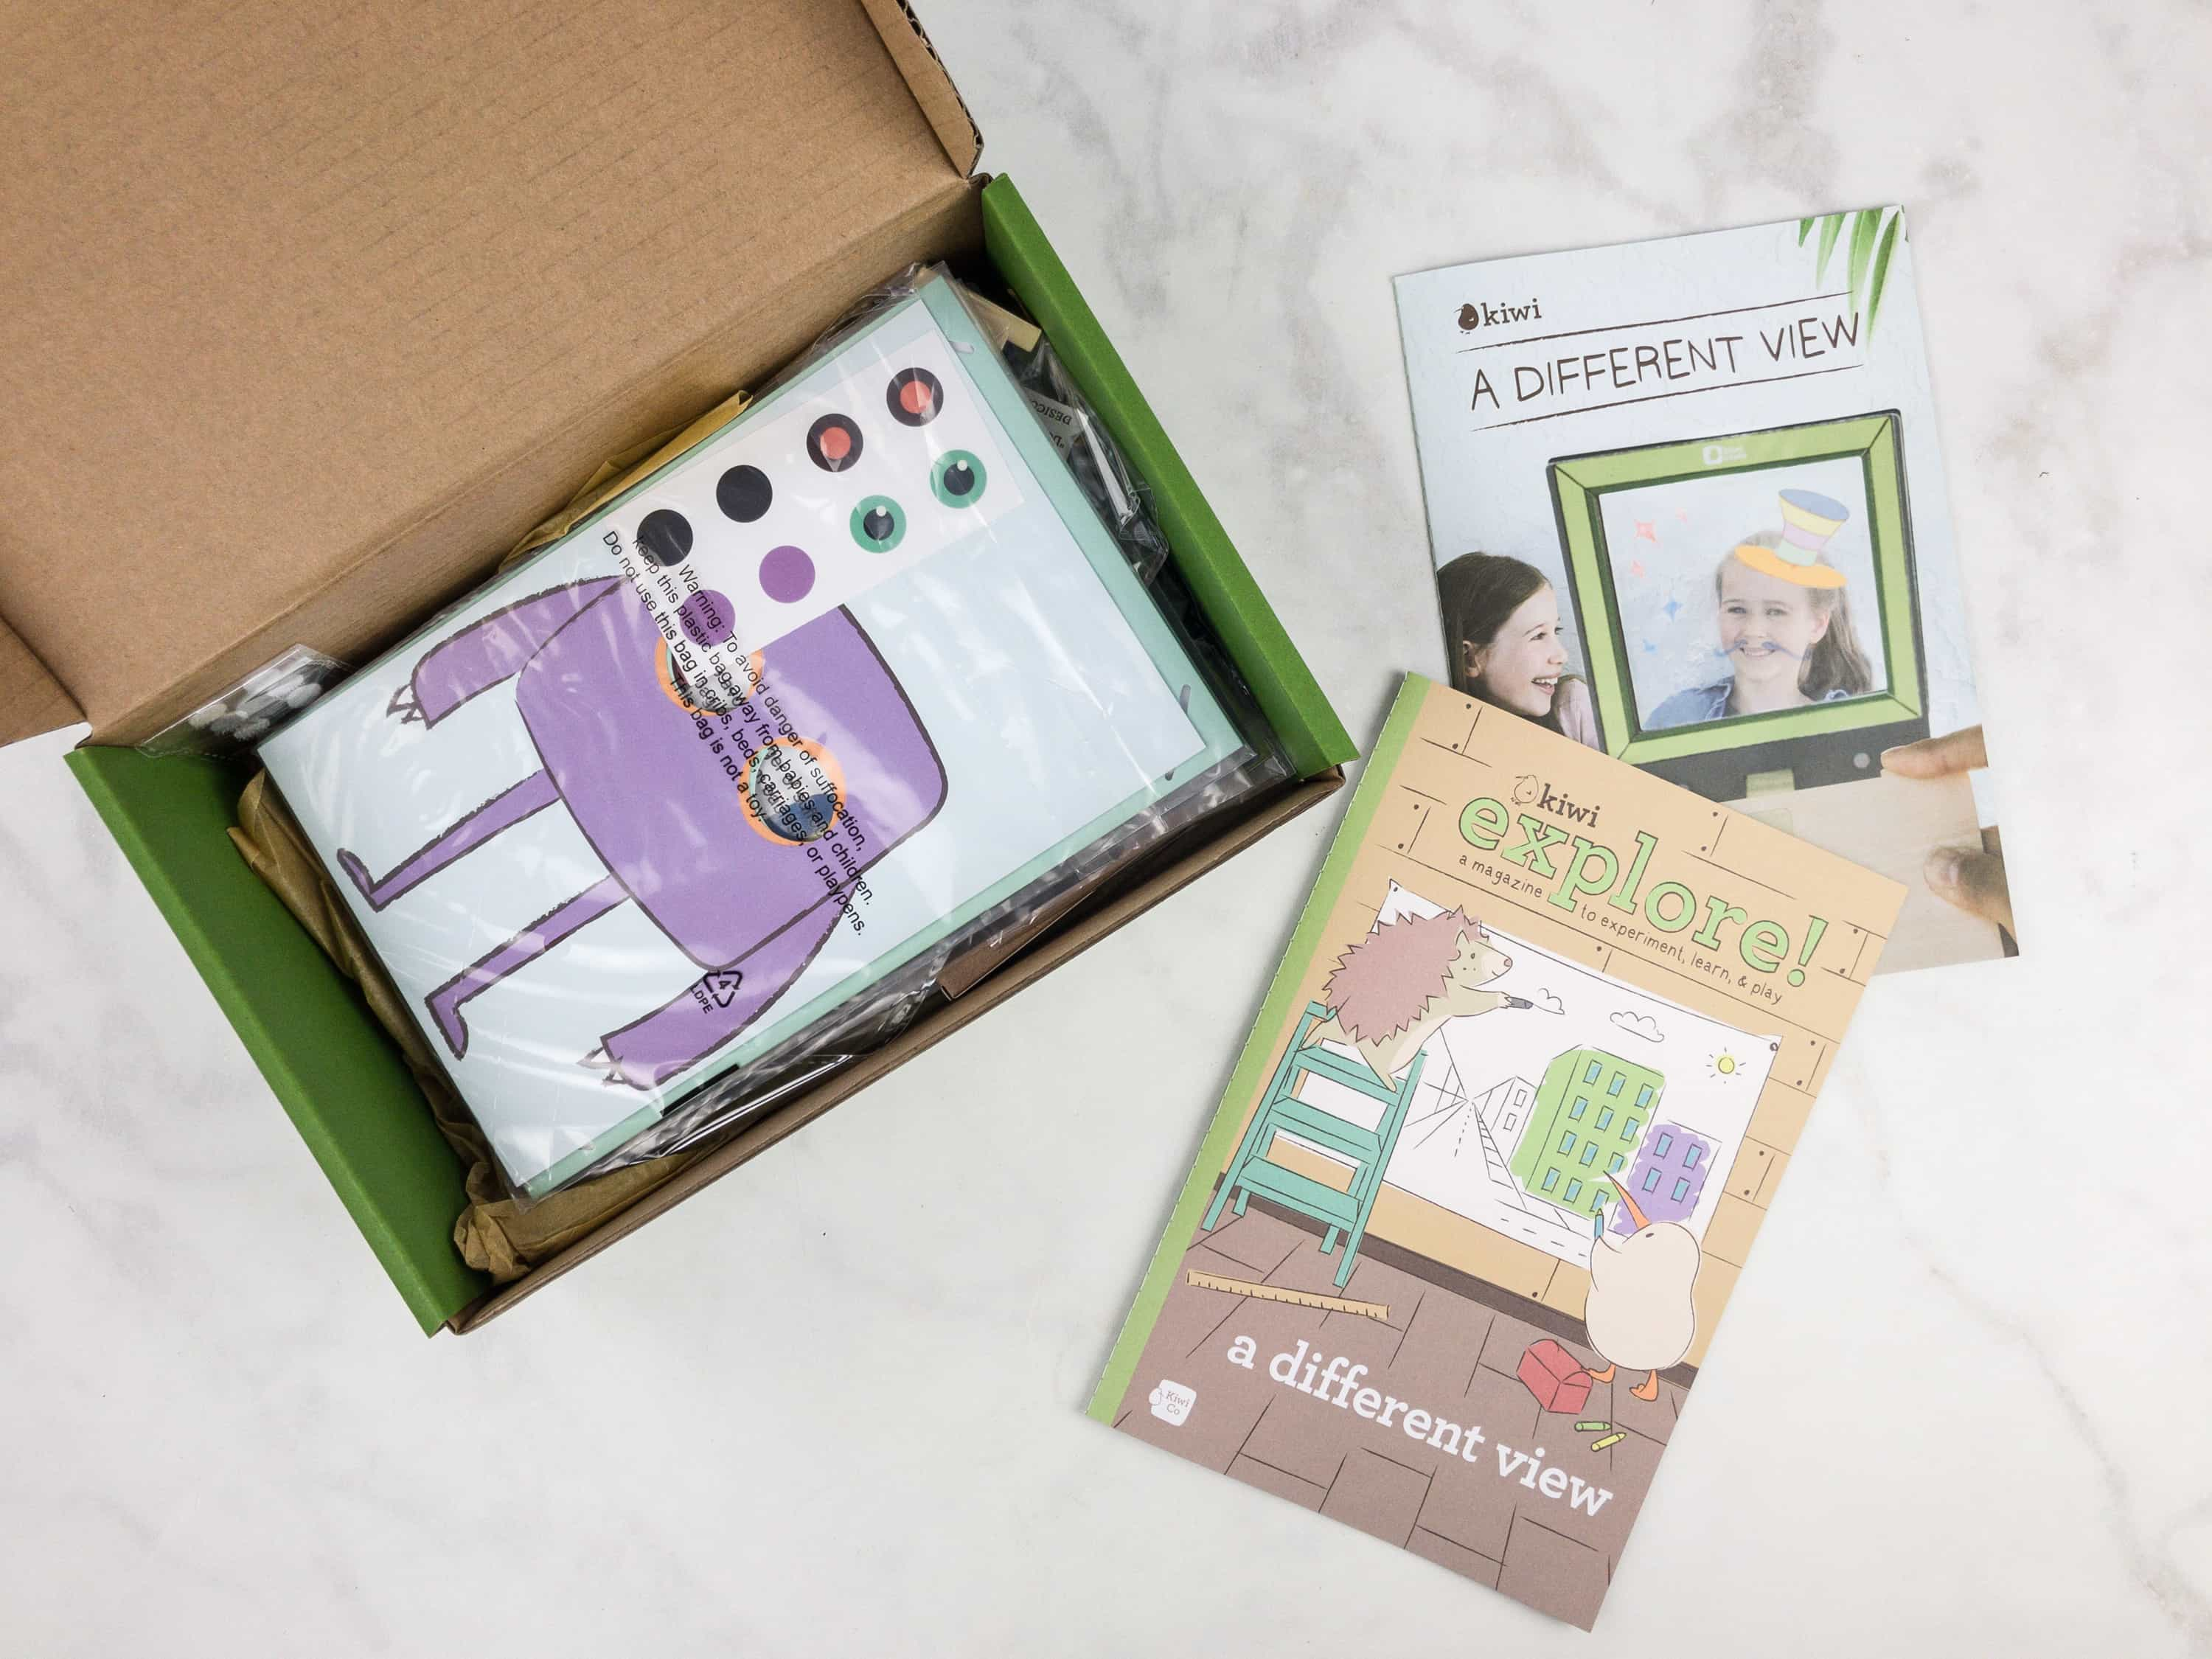 Kiwi Crate September 2017 Review & Coupon – A Different View!